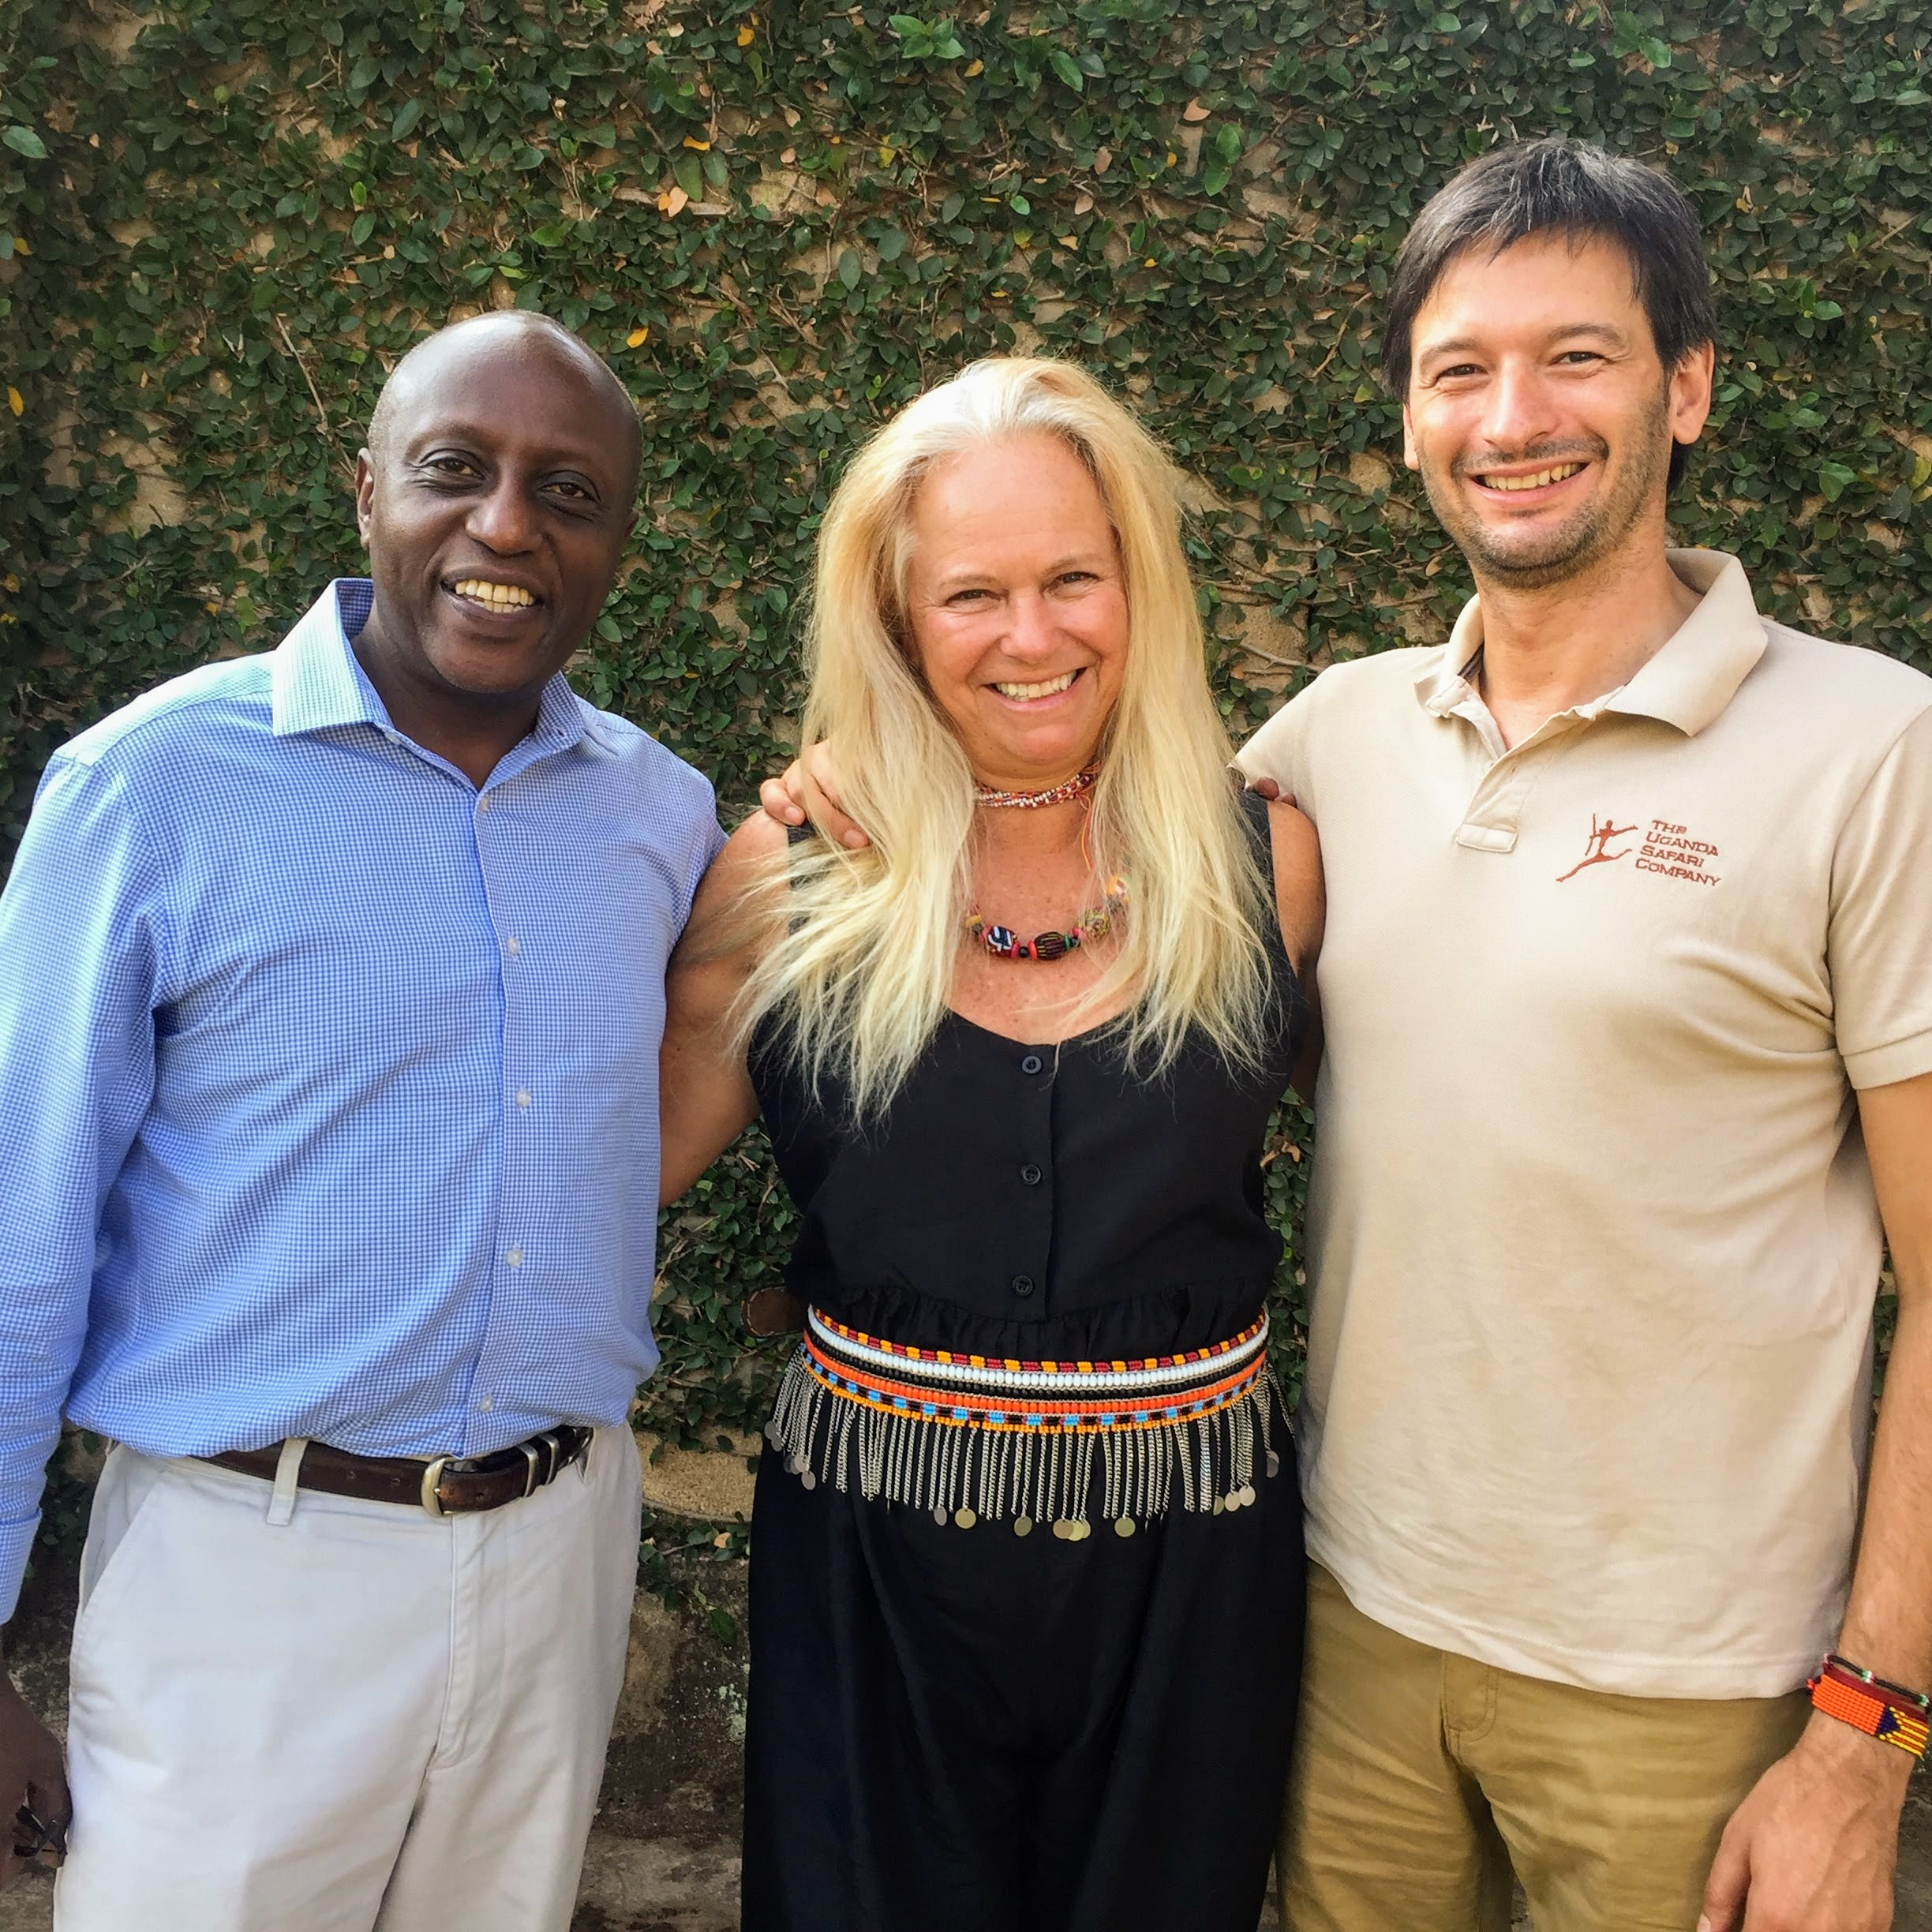 Colin Muhoozi of Africa Great Explorations Safaris and Oscar Plans of The Uganda Safari Company hosted Bibi Jordan on a Ugandan safari.